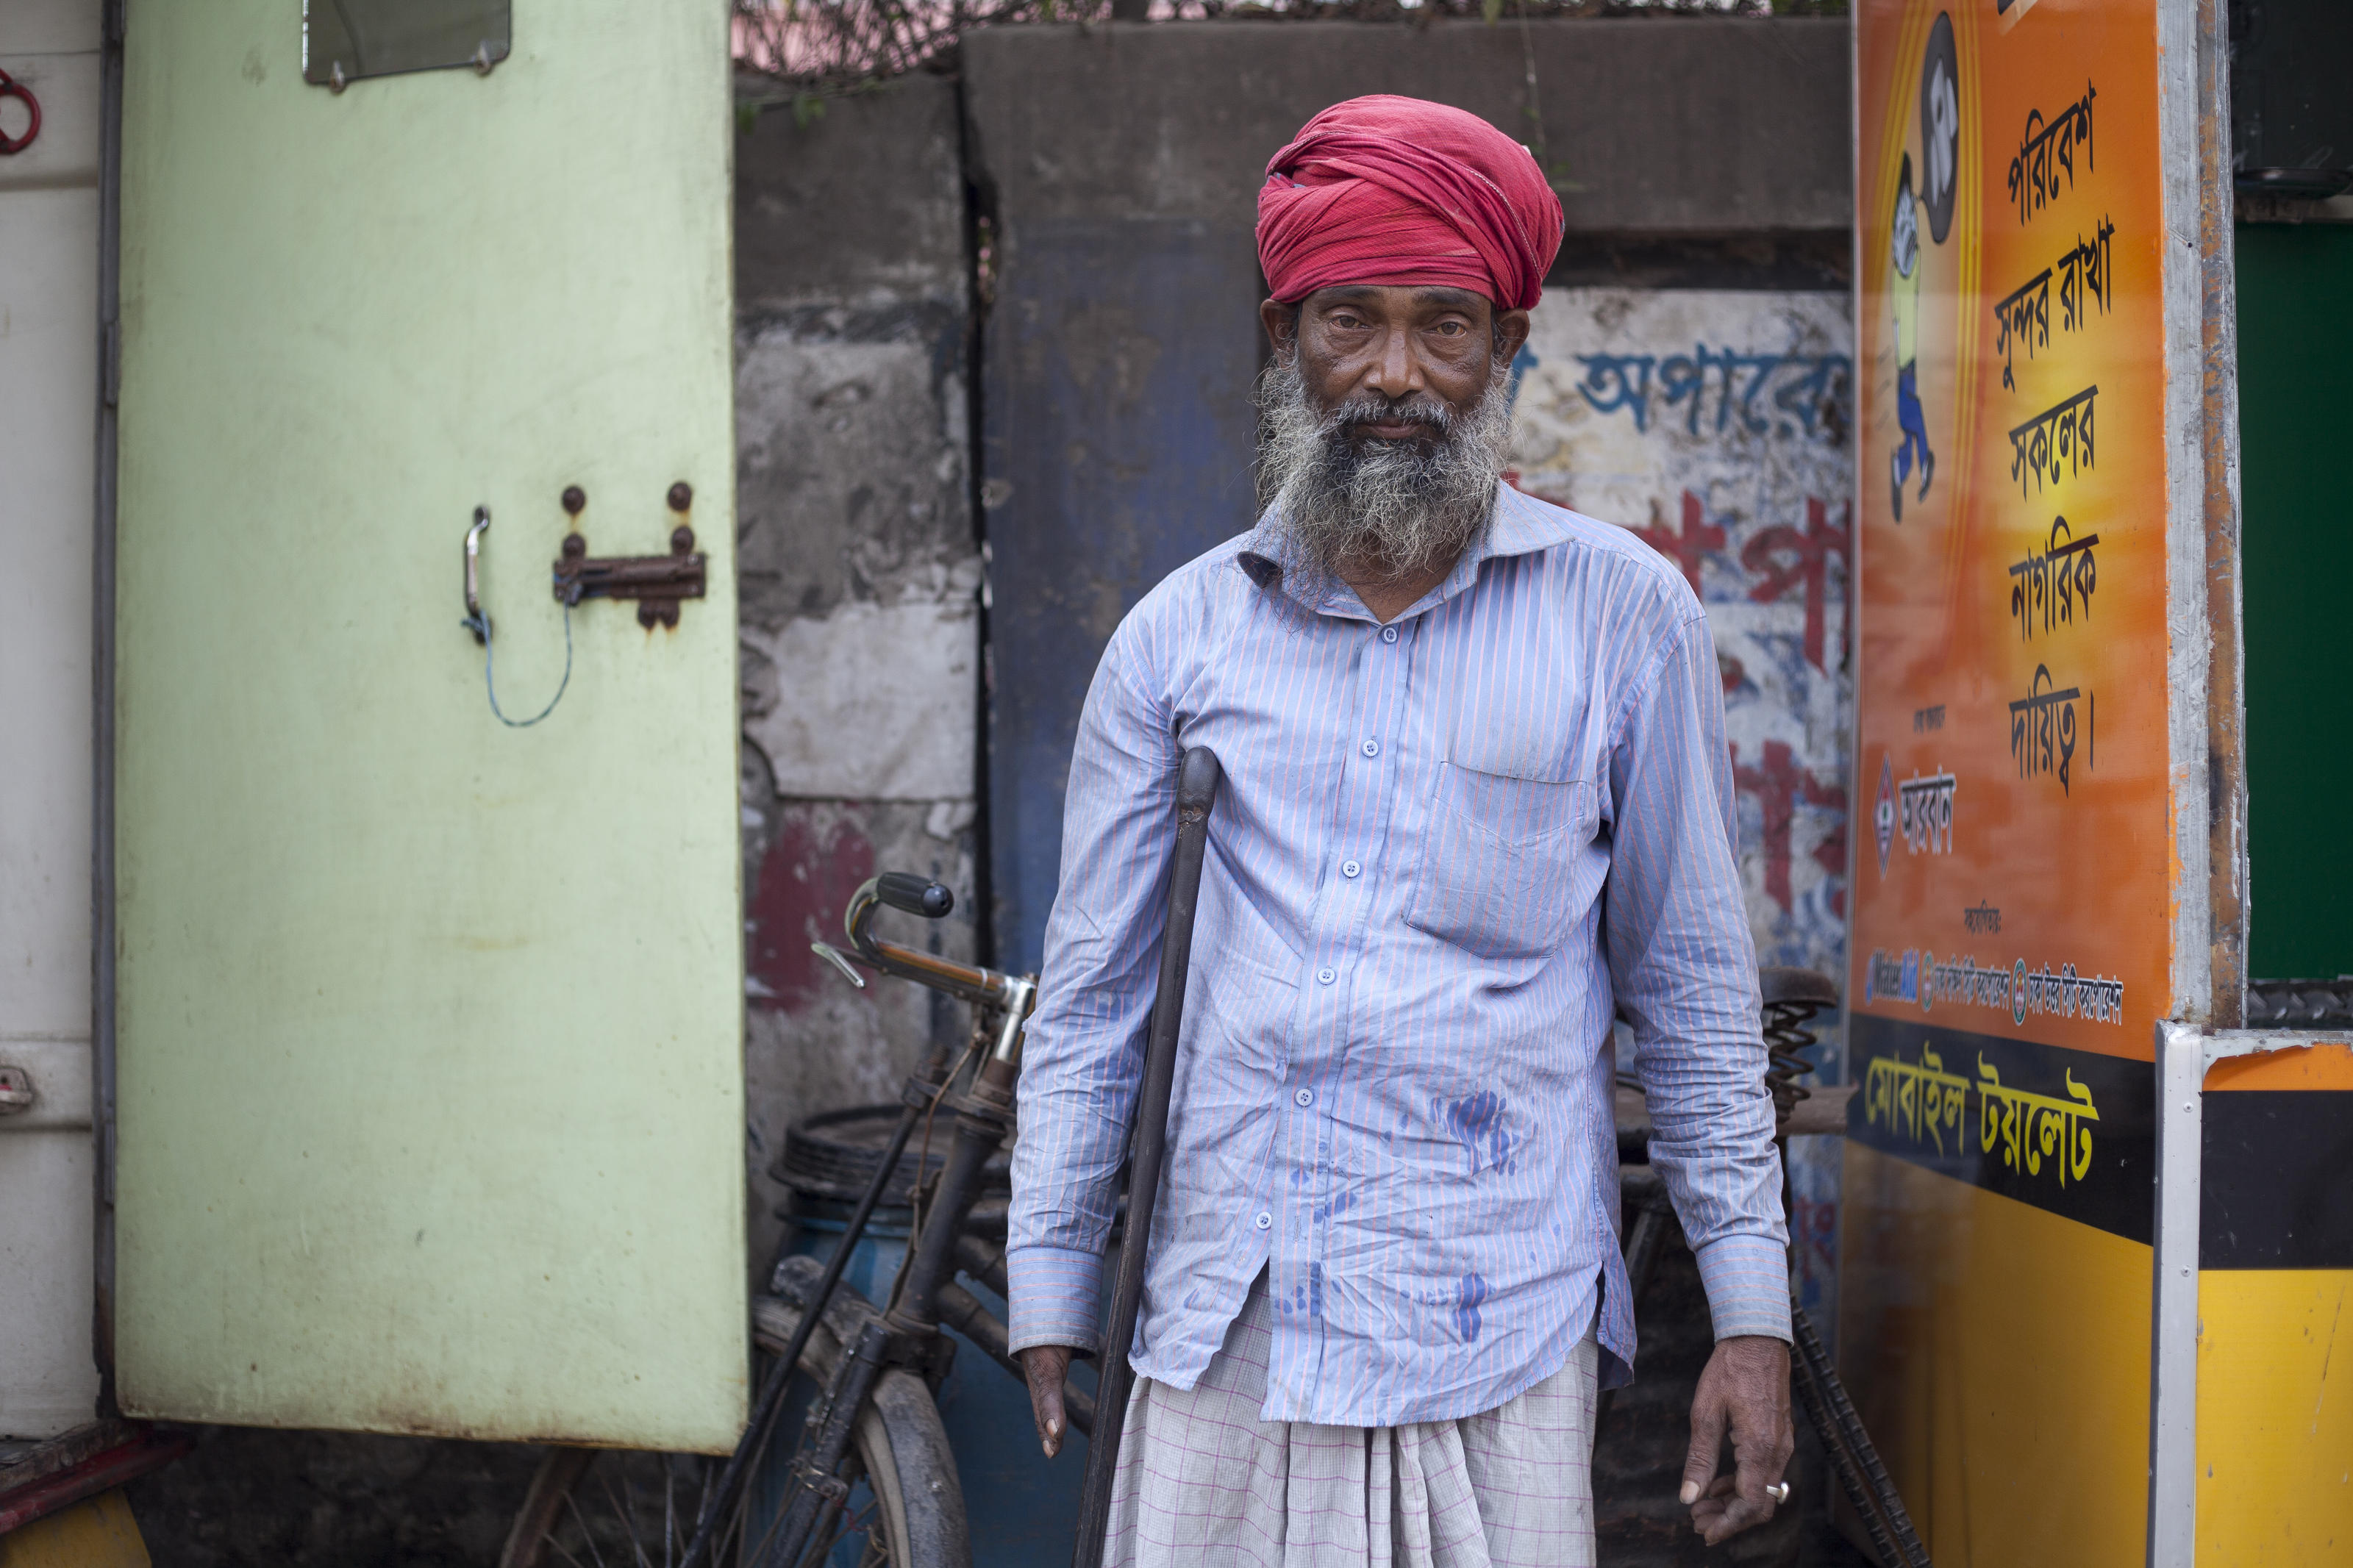 Amin, 52, mobile toilet keeper, on the street at a technical signal crossing, supported by WaterAid, in Dhaka, Bangladesh